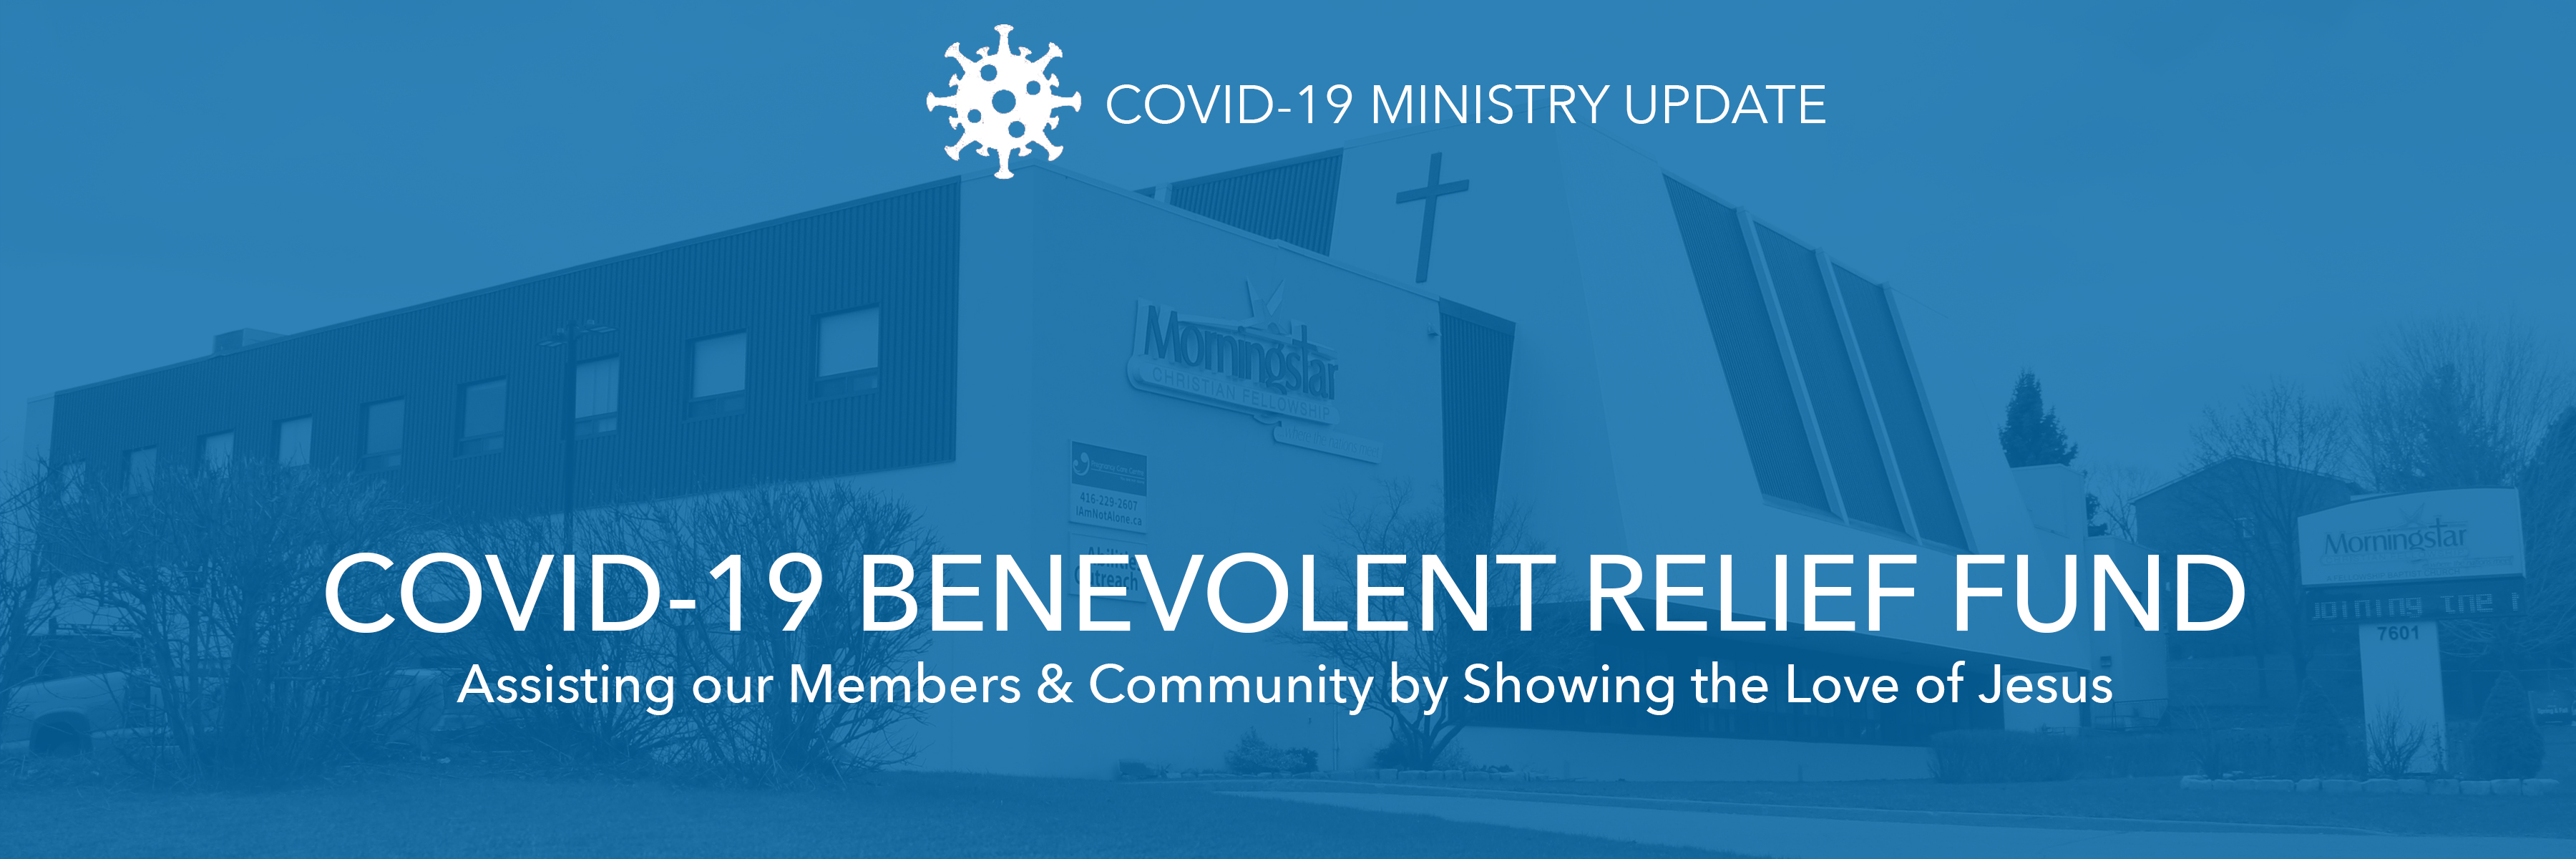 COVID-19 Ministry Update